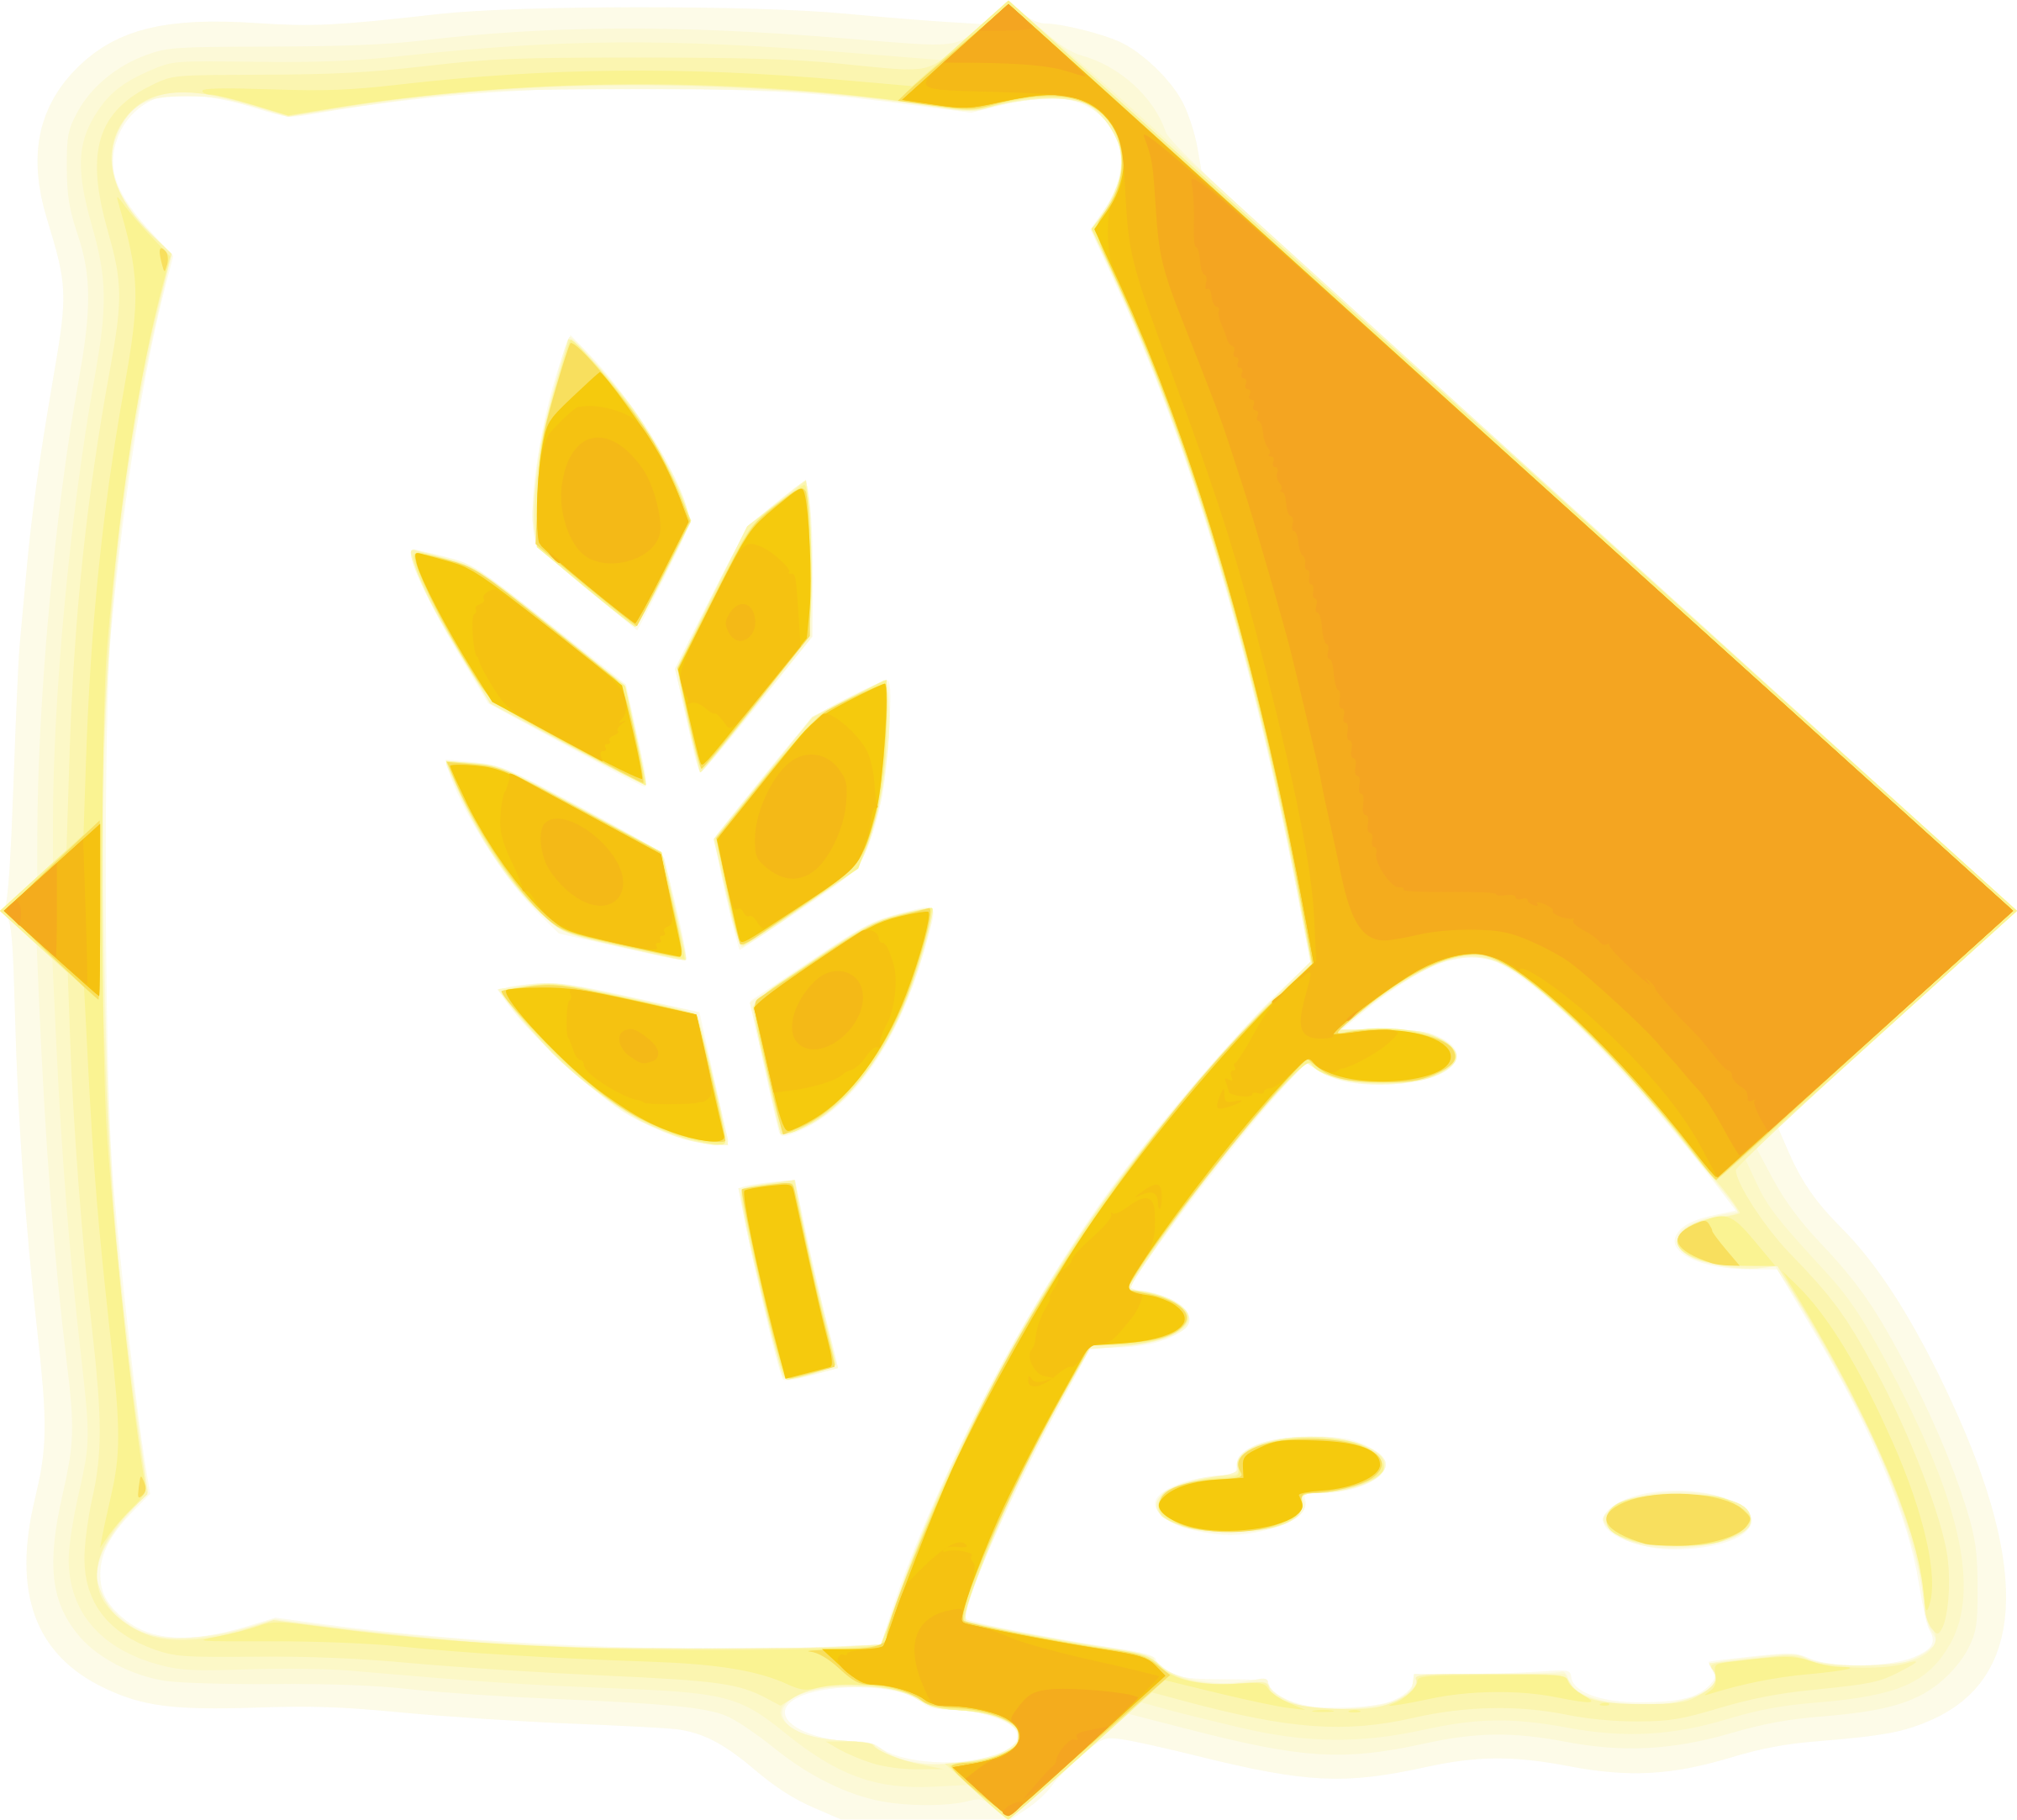 Grain icon icons png. Laurel clipart wheat clipart library download